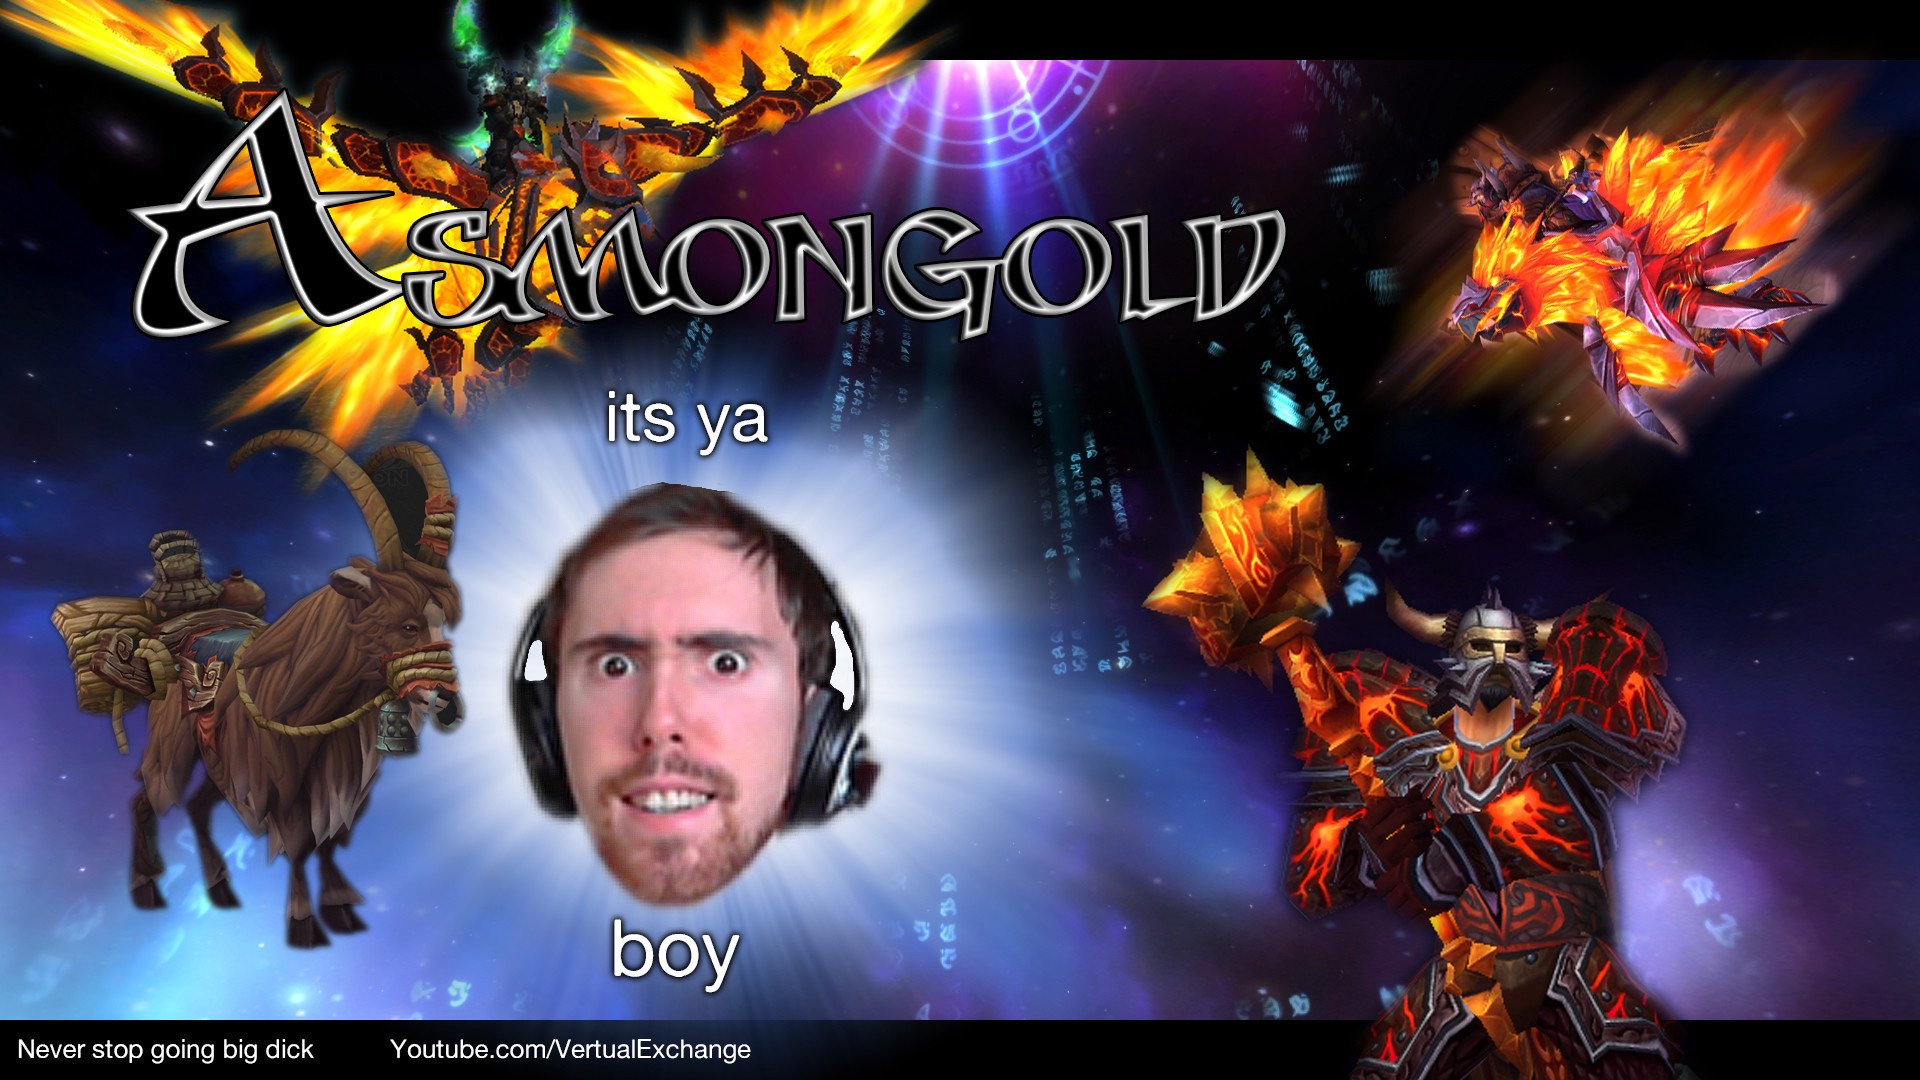 Twitch stream of Asmongold